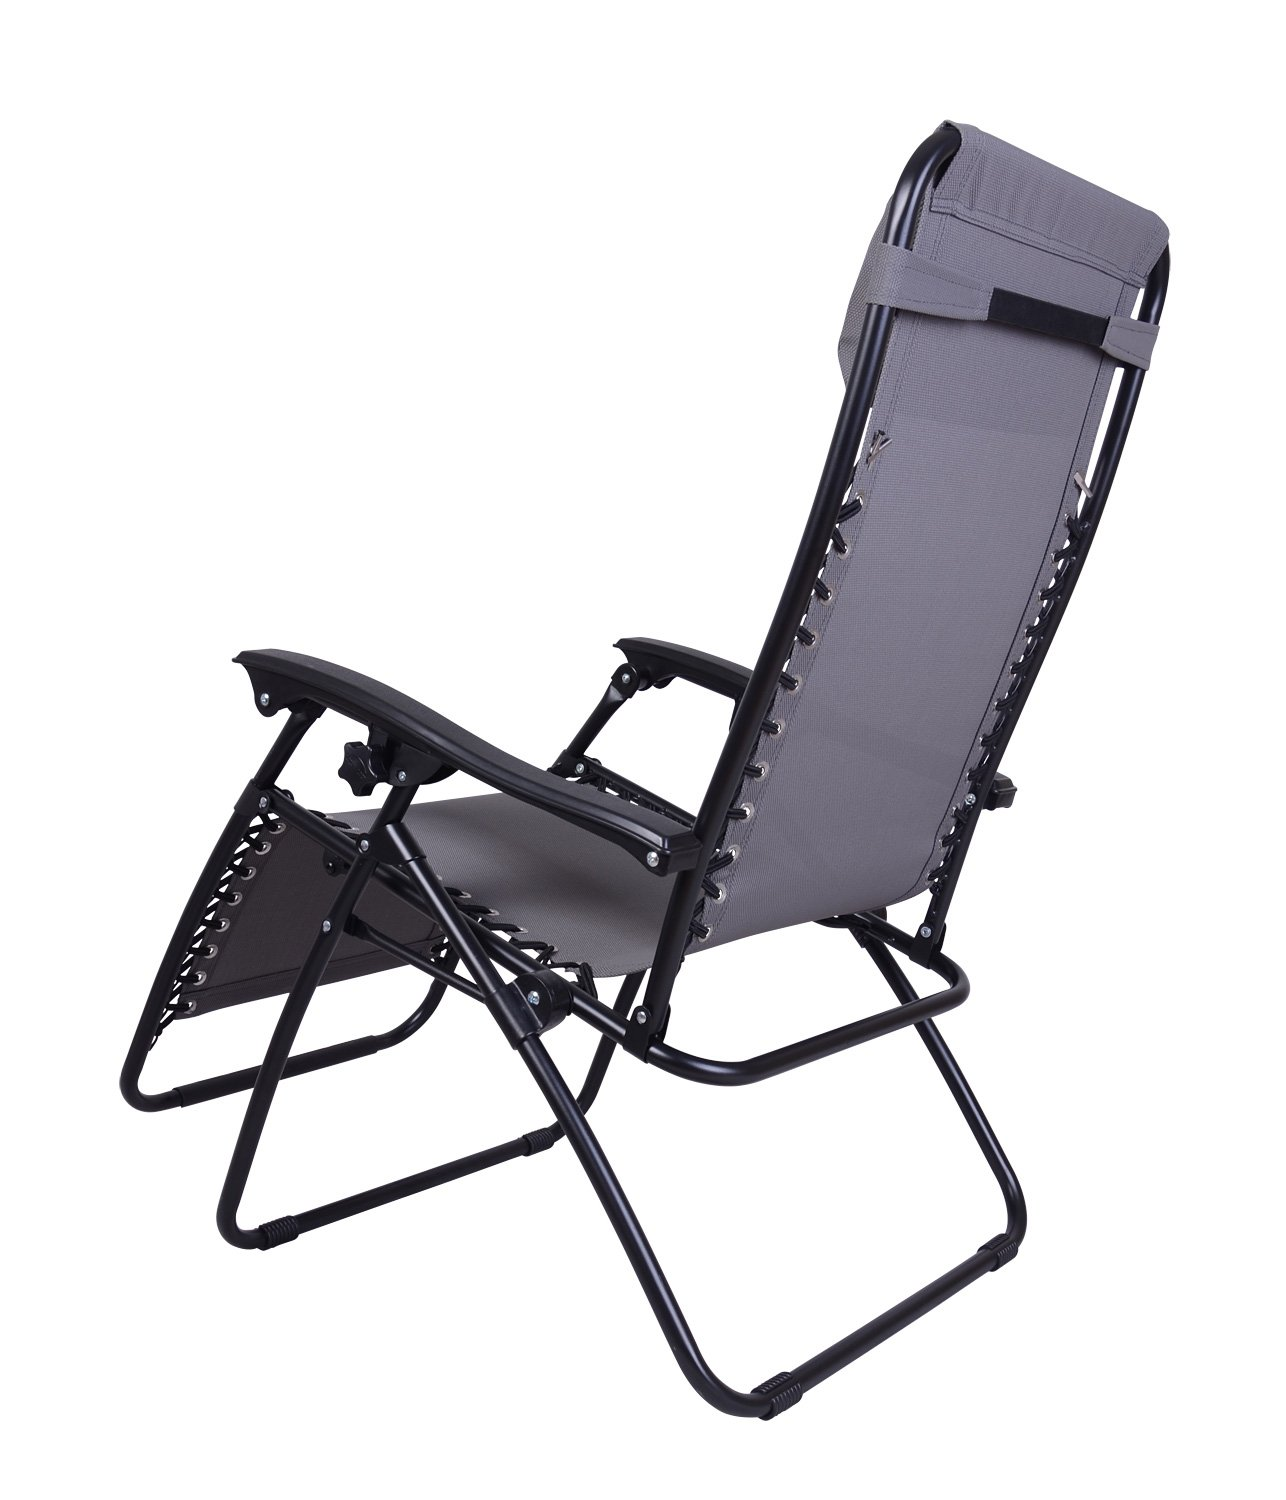 PROMOTION PRICE Outsunny Adjustable Zero Gravity Chair Recliner